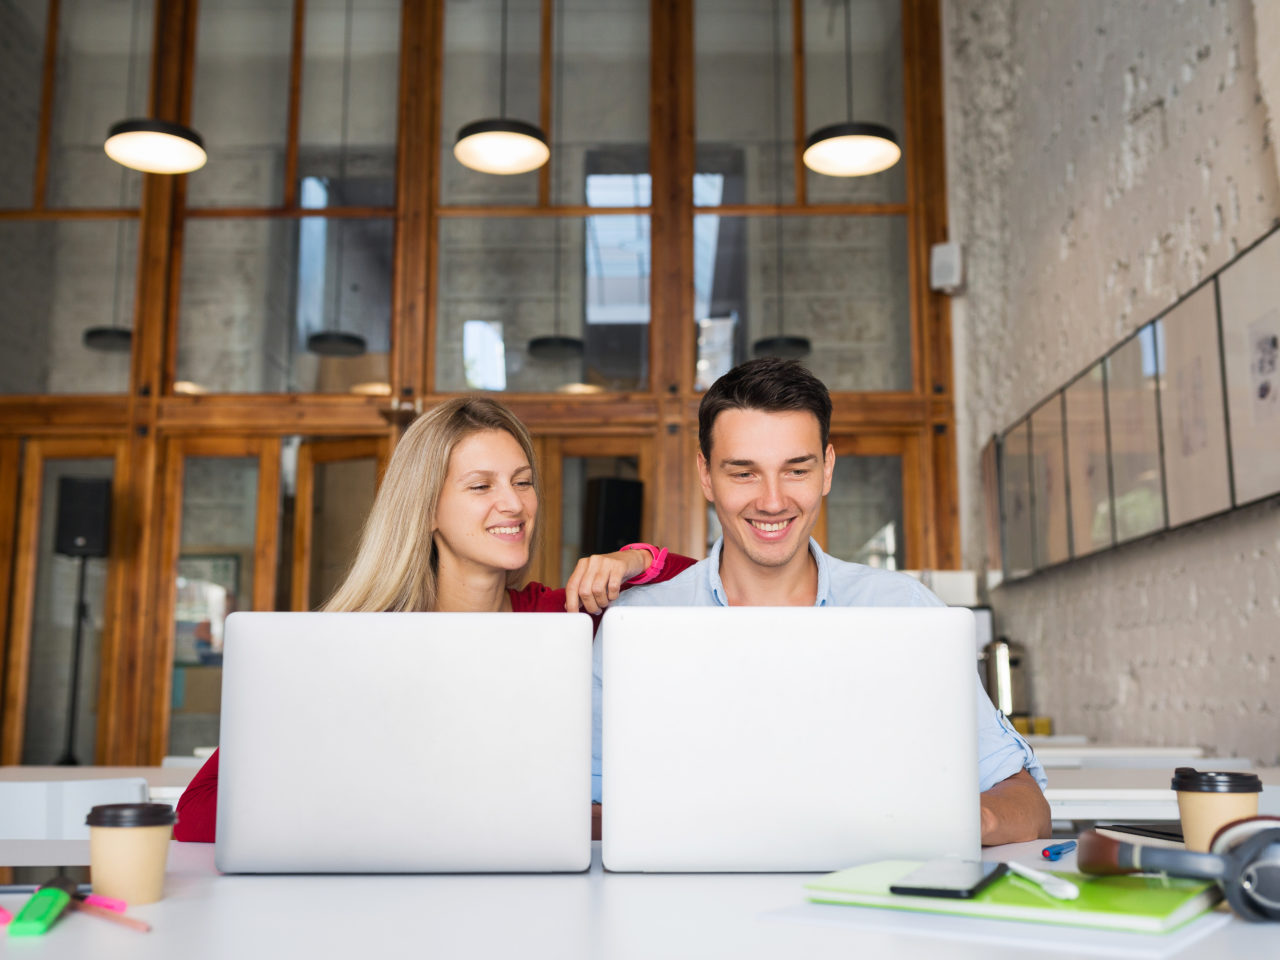 modern young man and woman working on laptop in open space co-working office room, freelancers, cooperation, startup, creative job